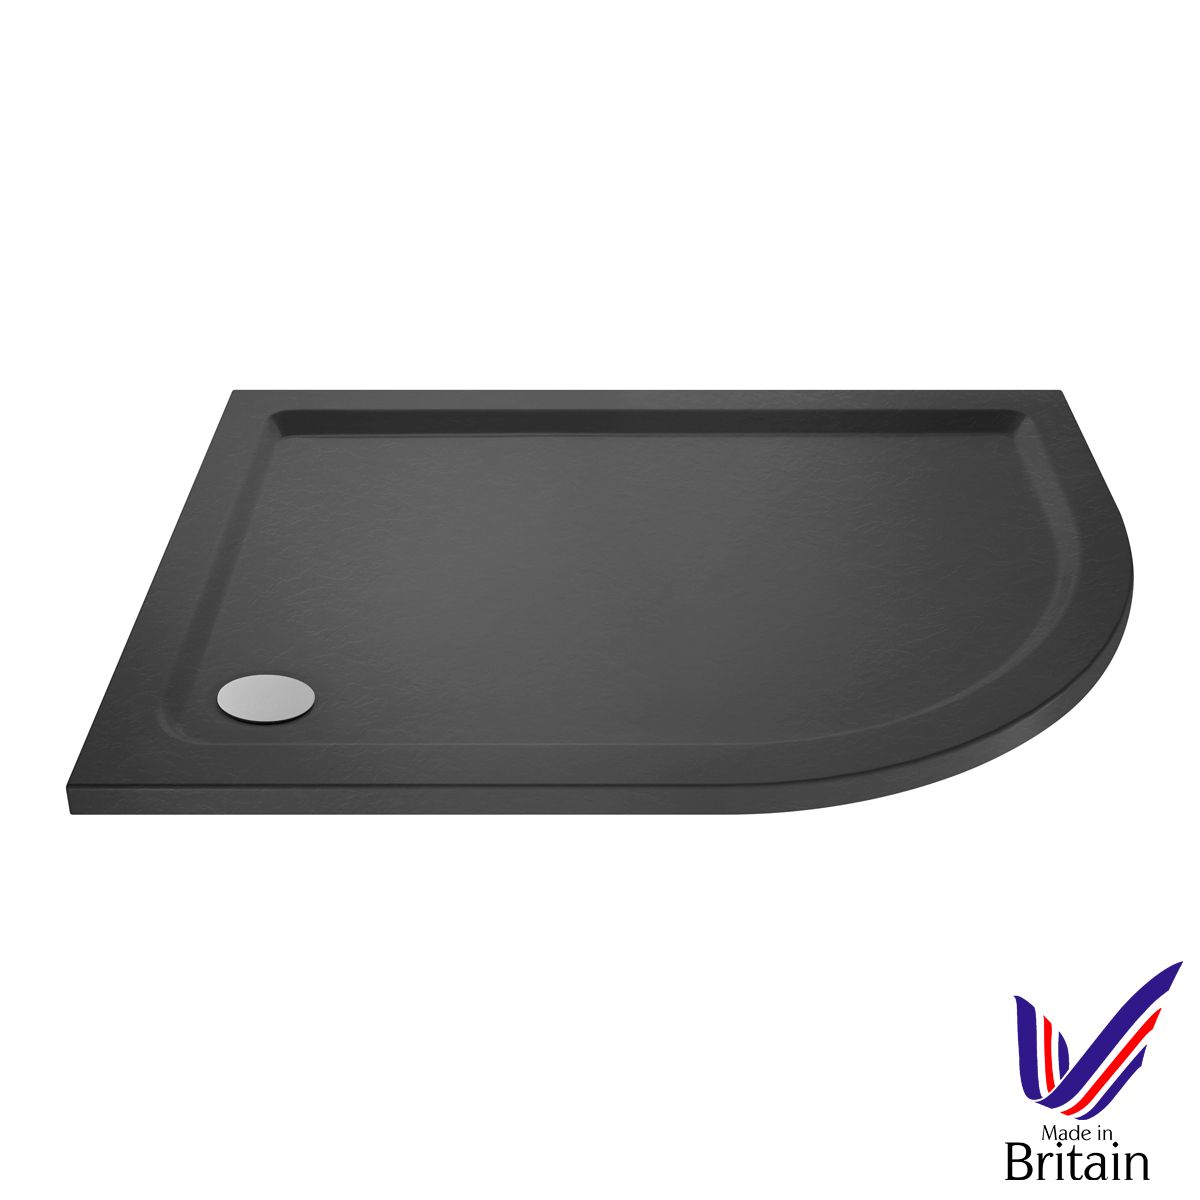 1000 x 800 Shower Tray Slate Grey Offset Quadrant Low Profile Right Hand by Pearlstone